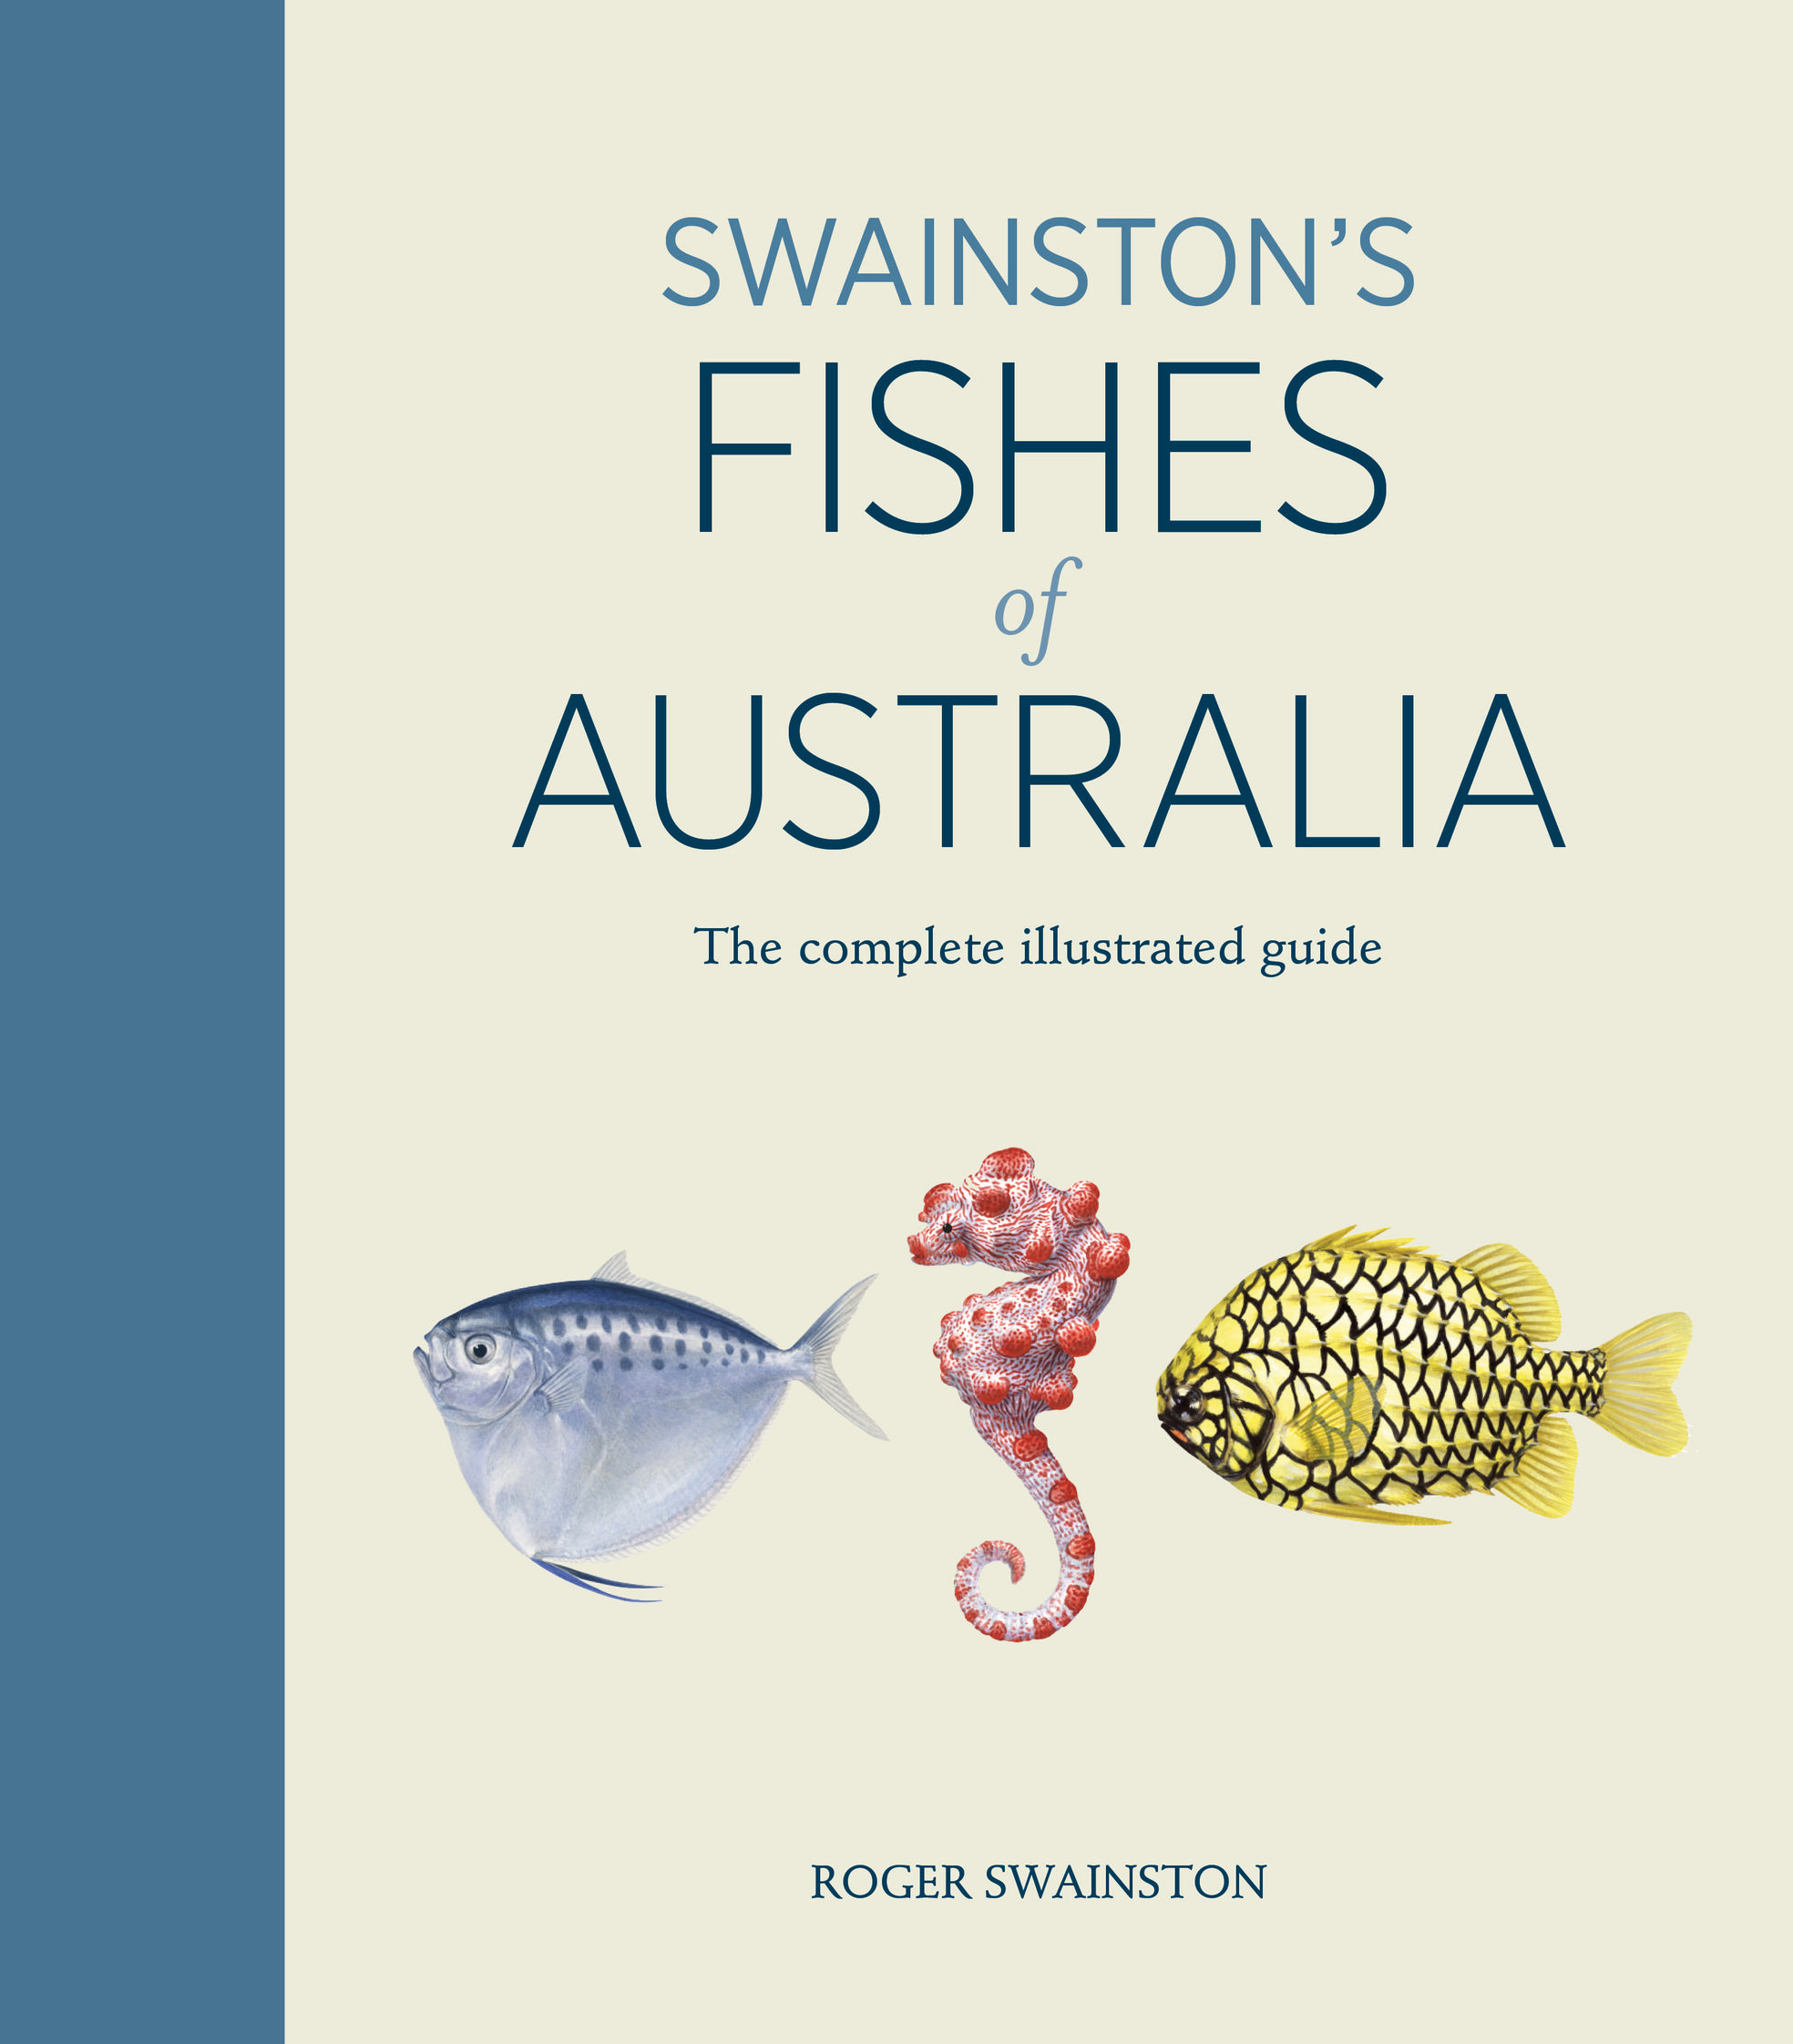 Swainston's Fishes of Australia: The complete illustrated guide by Roger Swainston, ISBN: 9780670071647